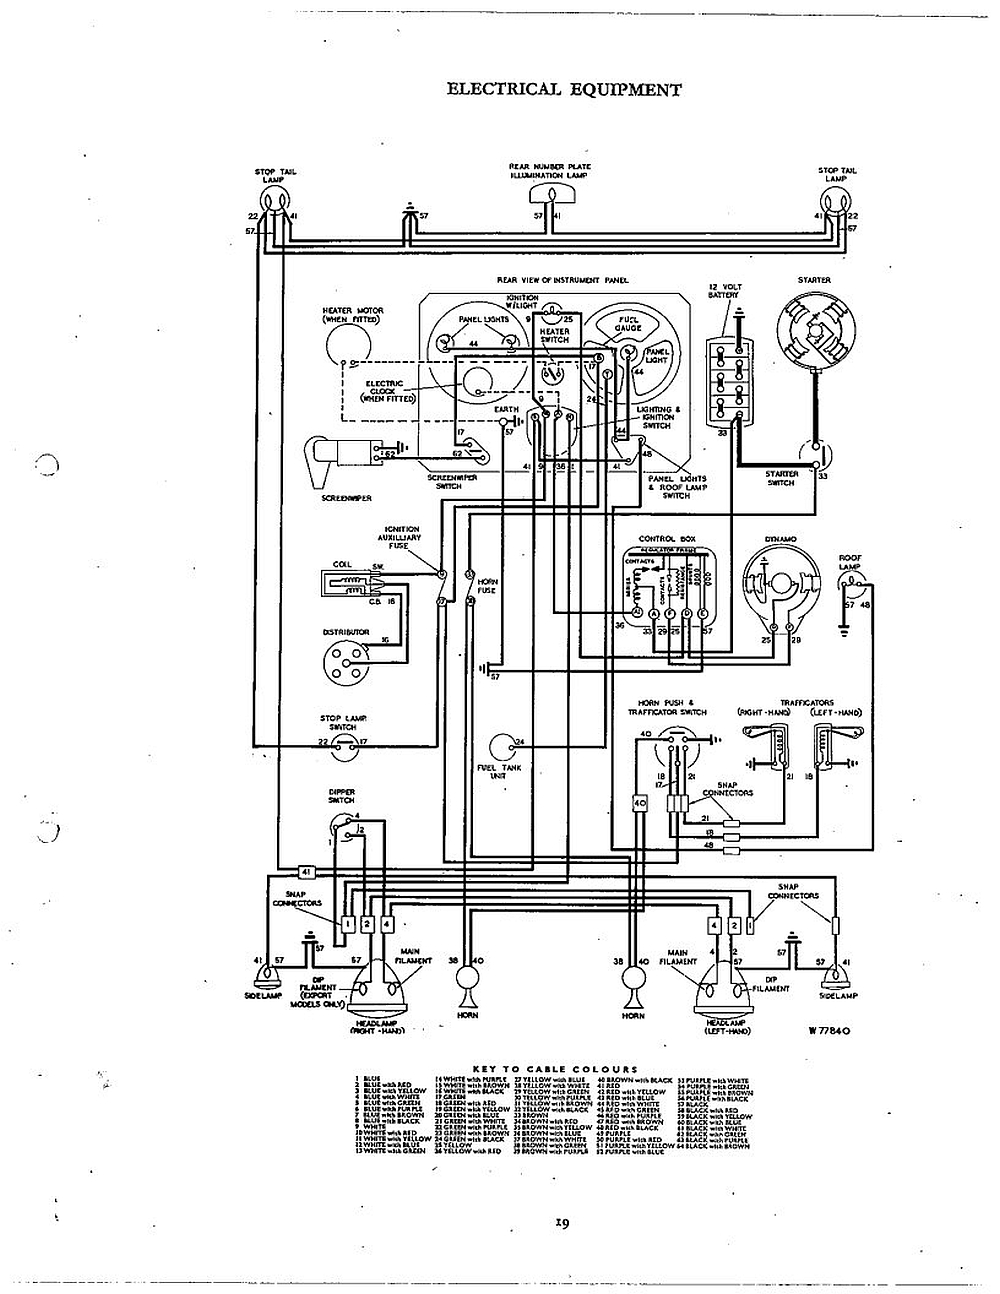 1973 Triumph Bonneville Wiring Diagram : 38 Wiring Diagram